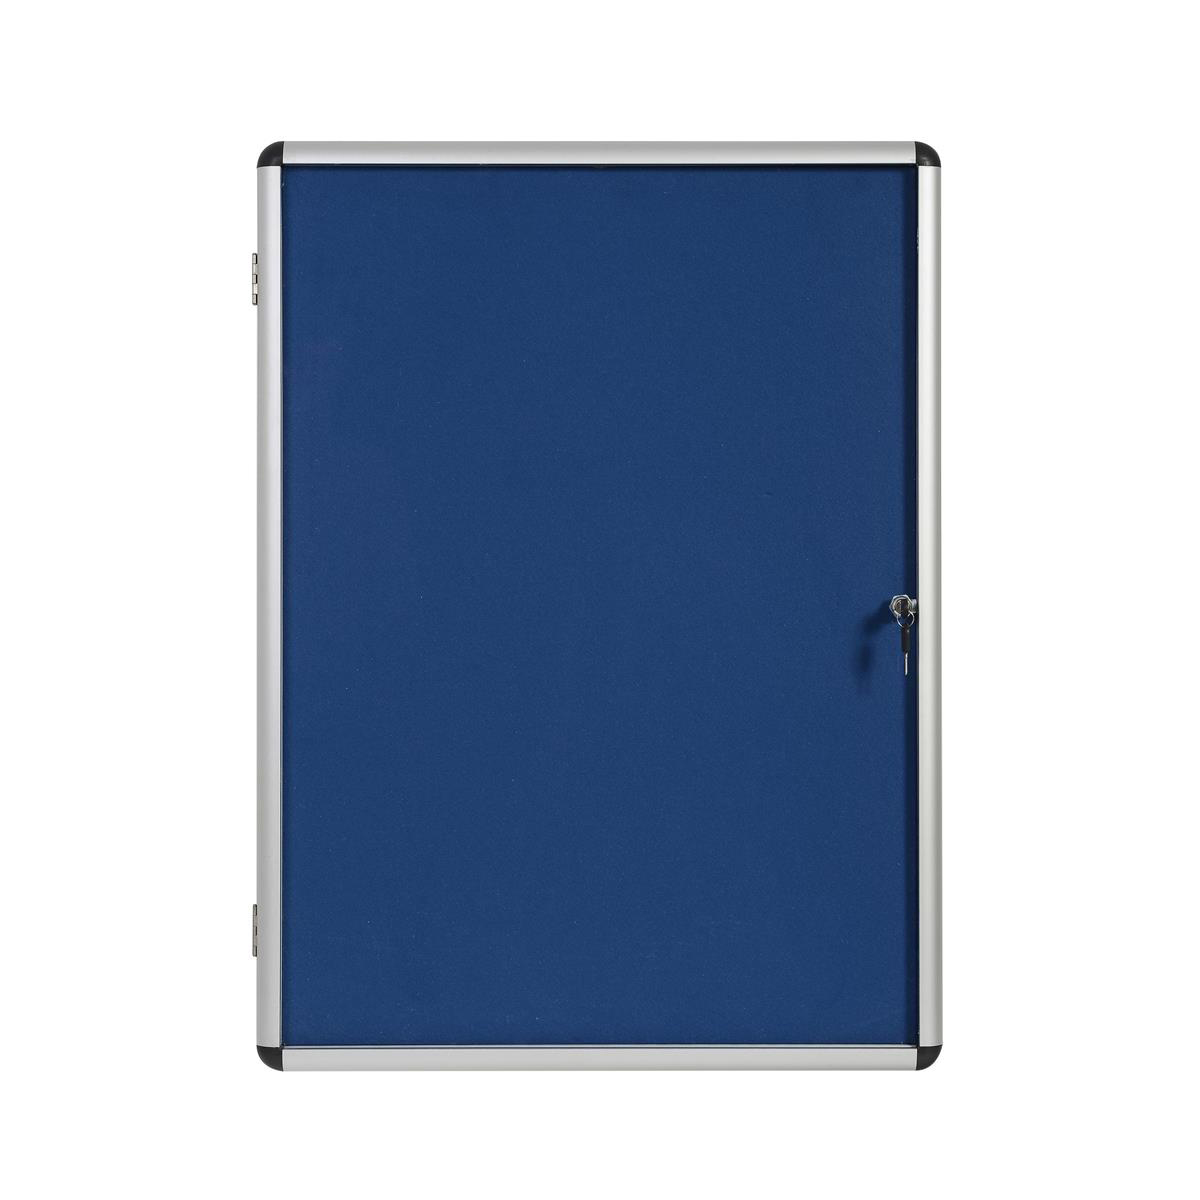 5 Star Office Noticeboard Glazed Lockable Aluminium Trim Blue Felt Board W1200xH900mm